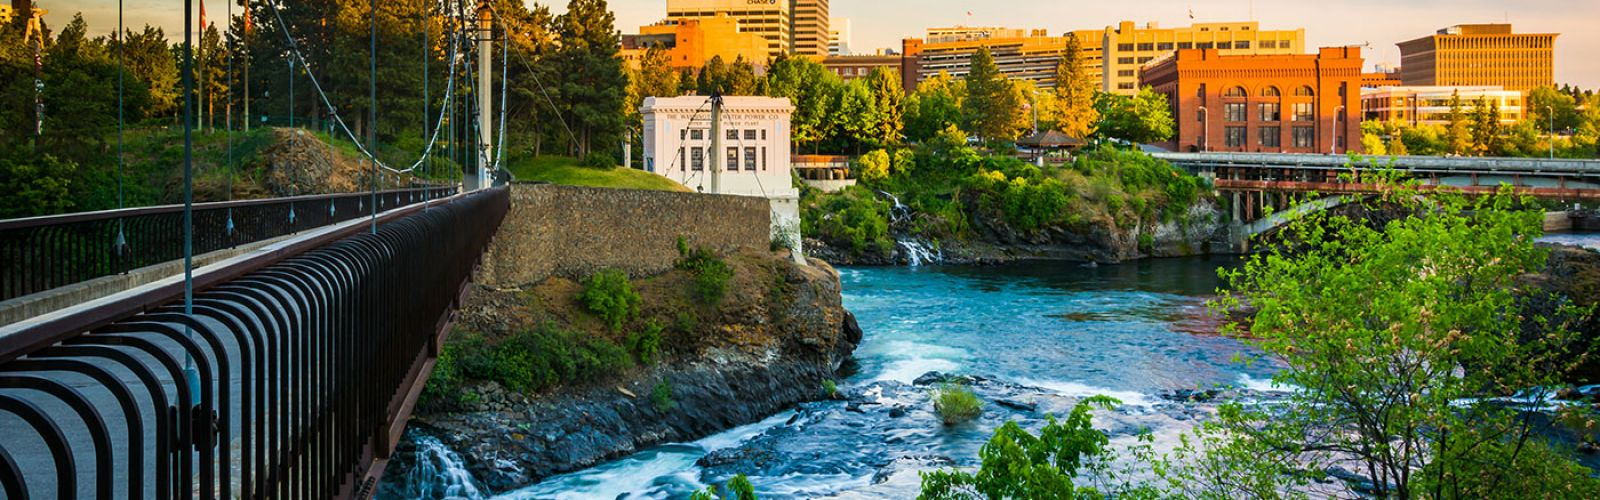 Spokane ranks #4 Best Place to Live in the US if you're concerned about climate change